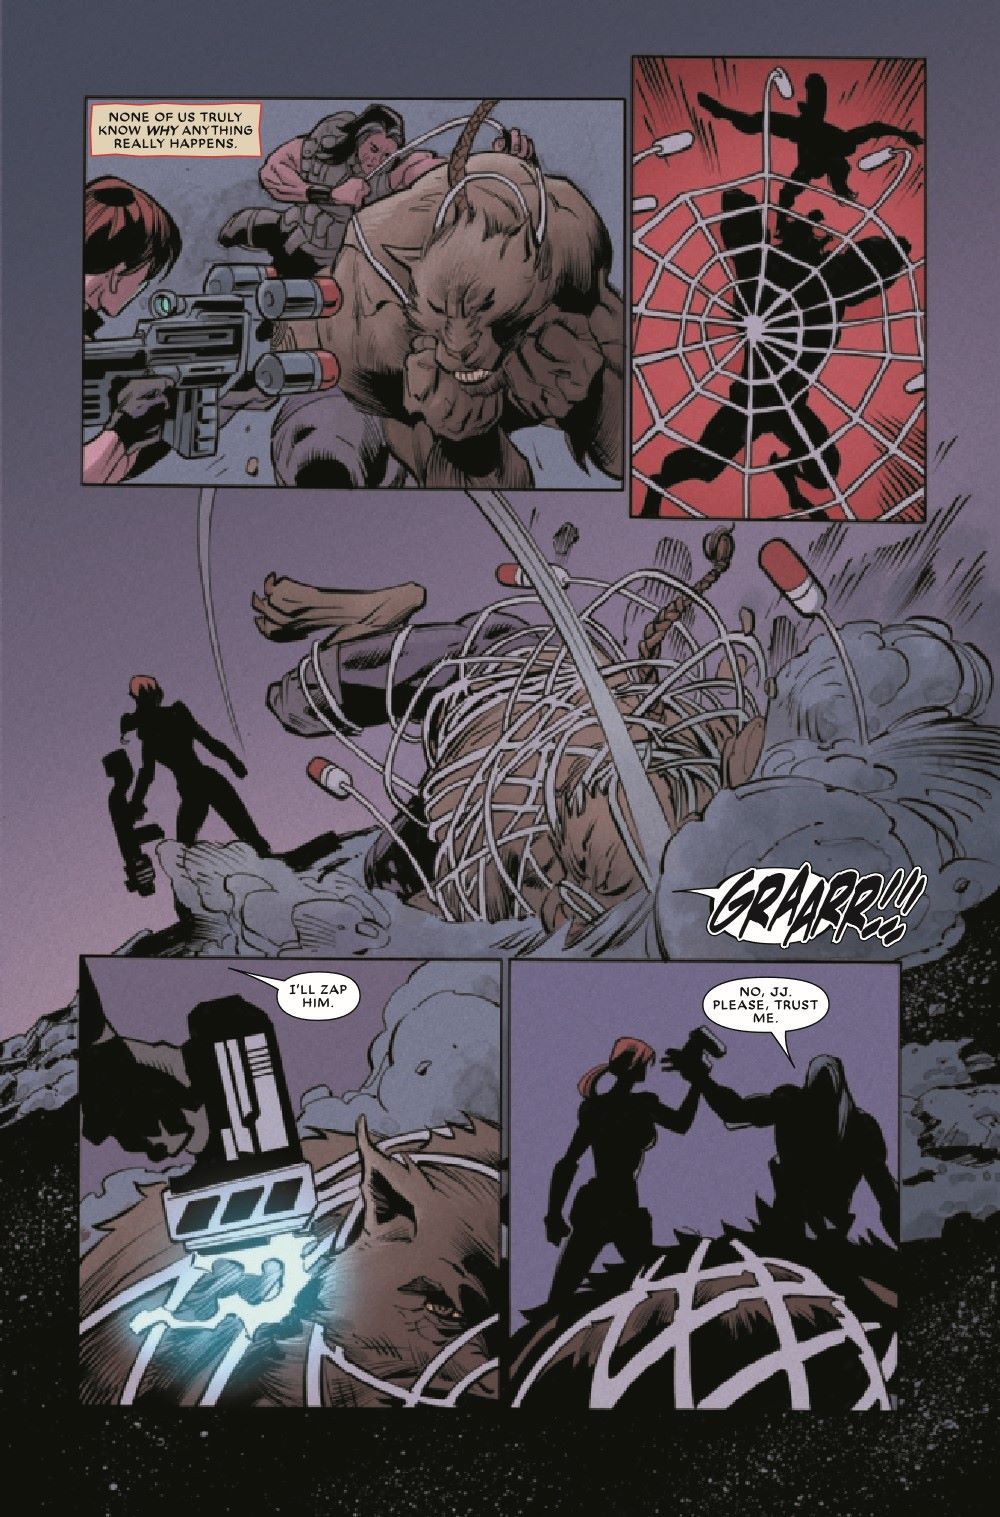 WBN2020003_Preview-6 ComicList Previews: WEREWOLF BY NIGHT #3 (OF 4)